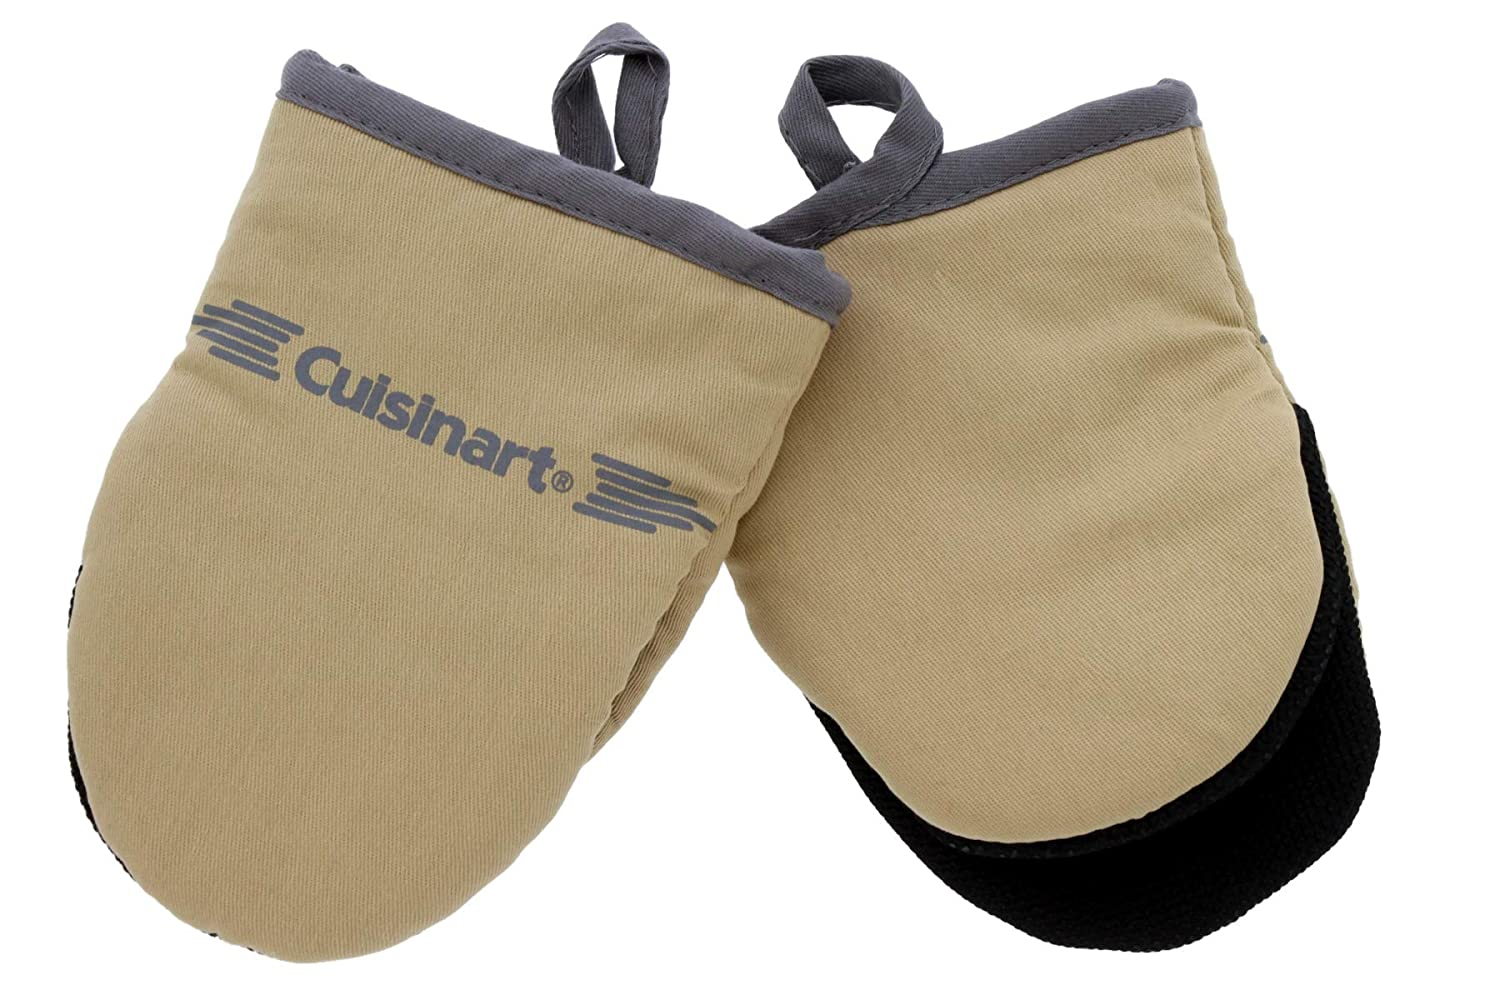 Cuisinart Neoprene Mini Oven Mitts, 2pk - Non-Slip Heat Resistant Gloves Protect Hands and Surfaces from Hot Cookware, Kitchenware Items - Ideal Mini Kitchen Set with Hanging Loop - Tan with Grey